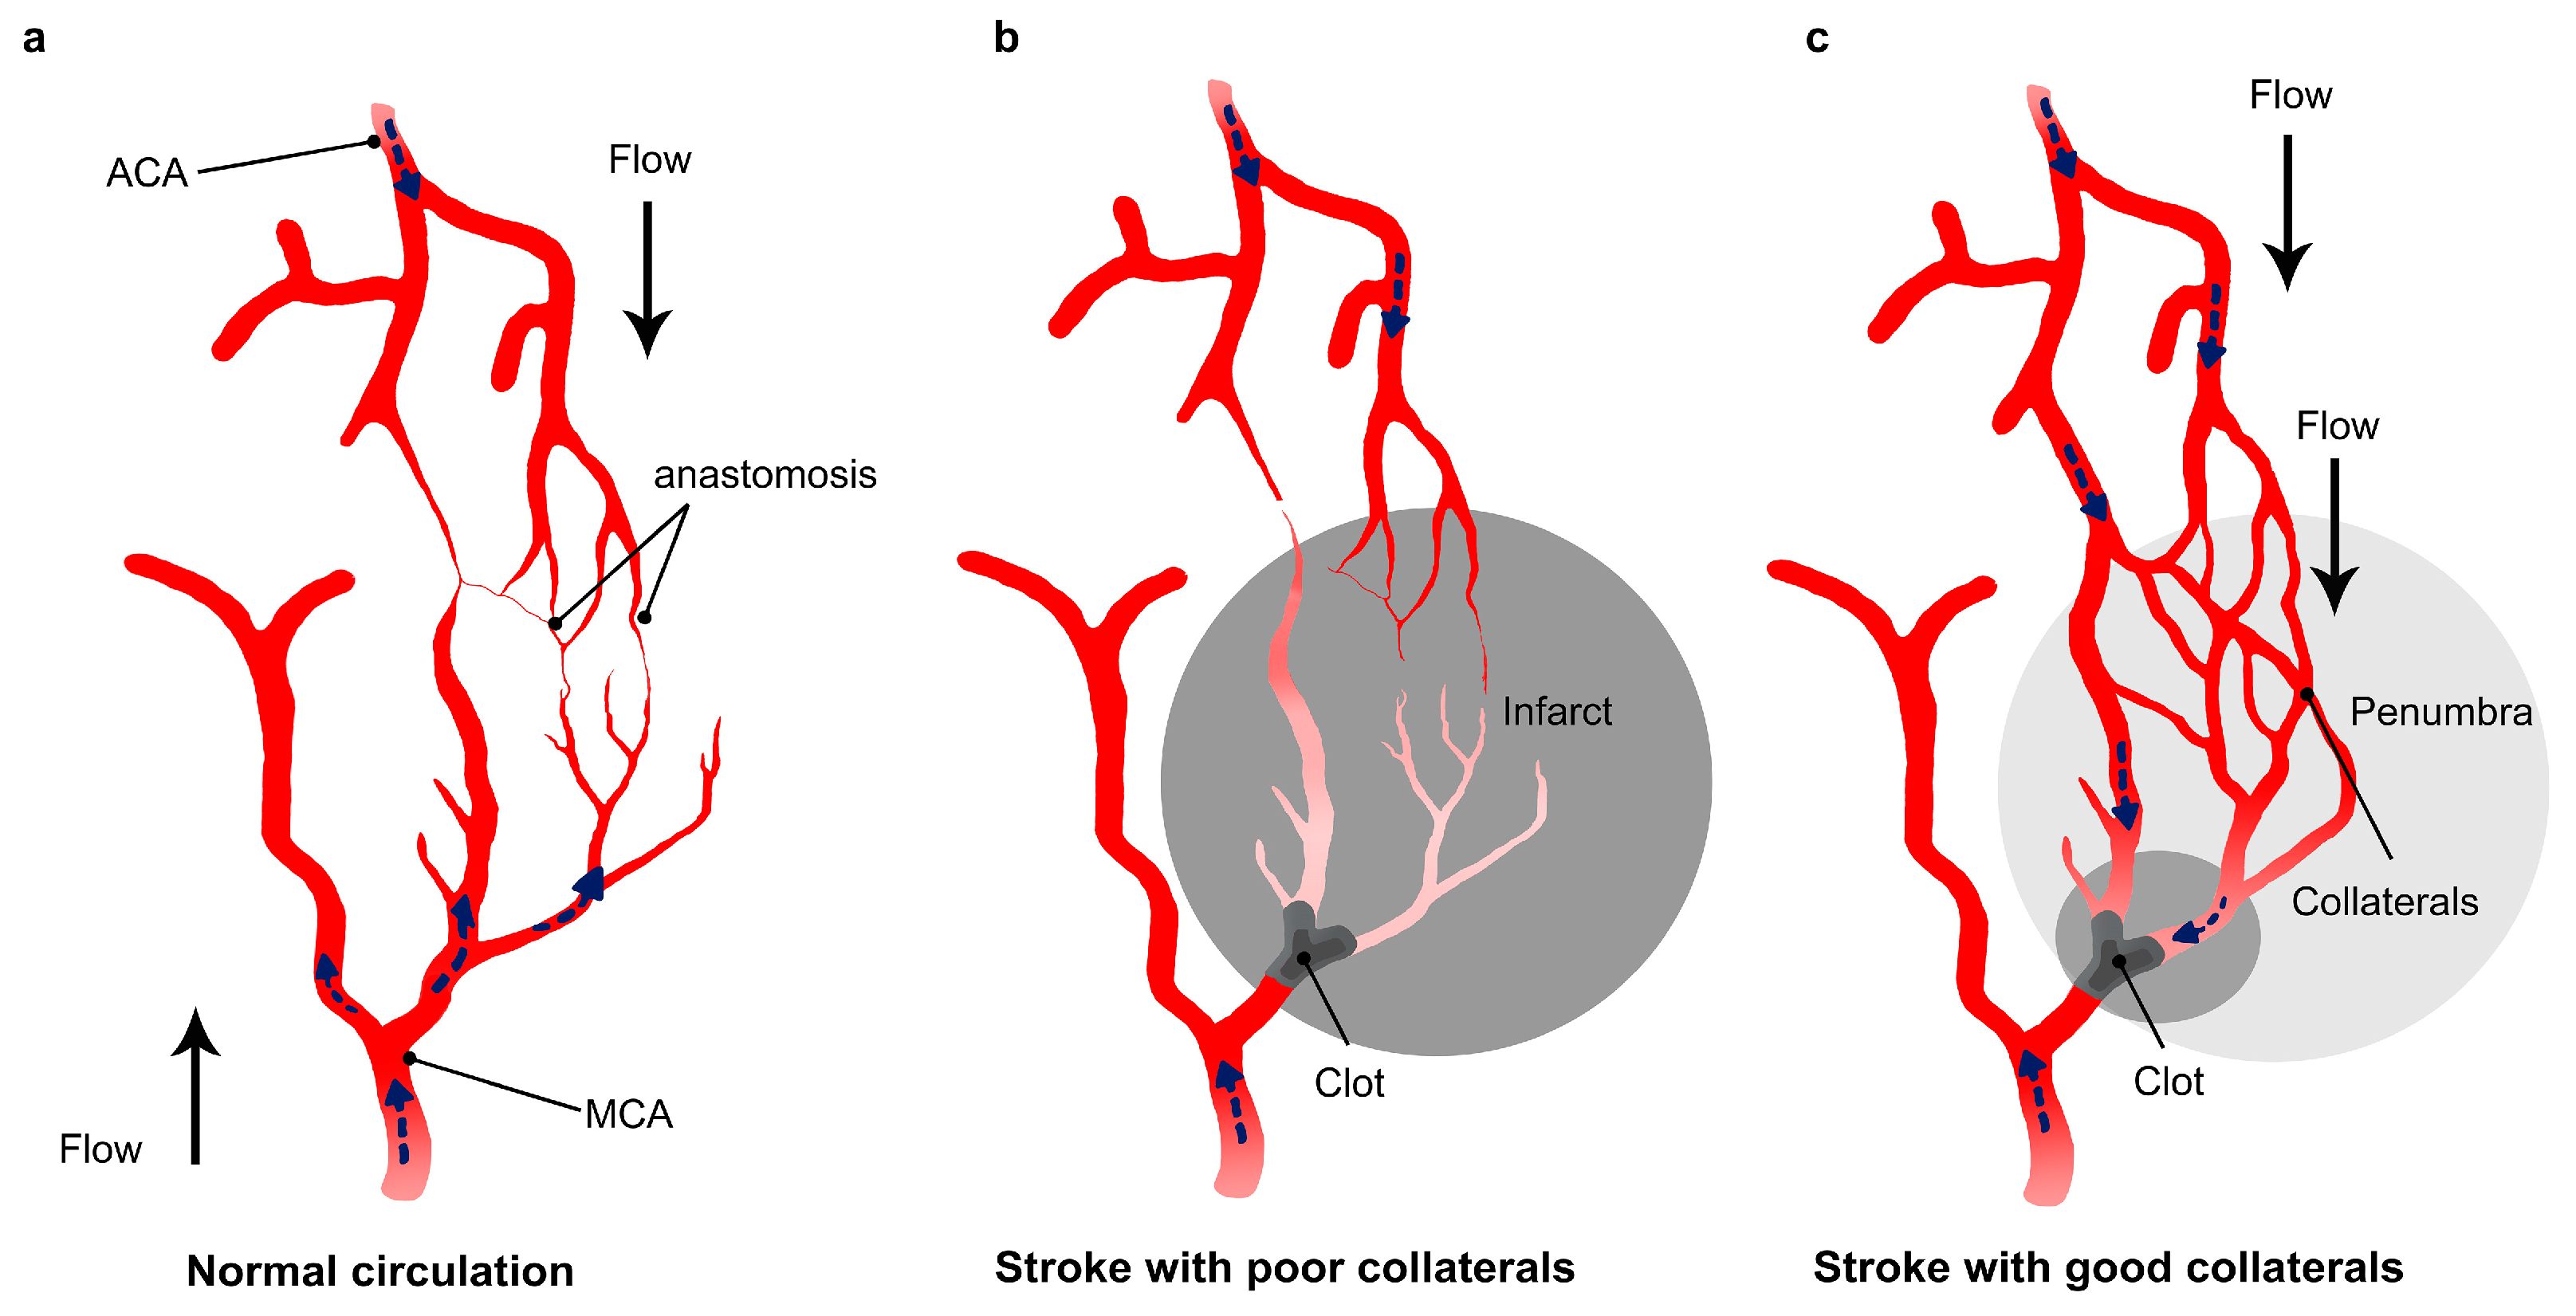 Different stroke extent based on non/existence of good collateral circulation.